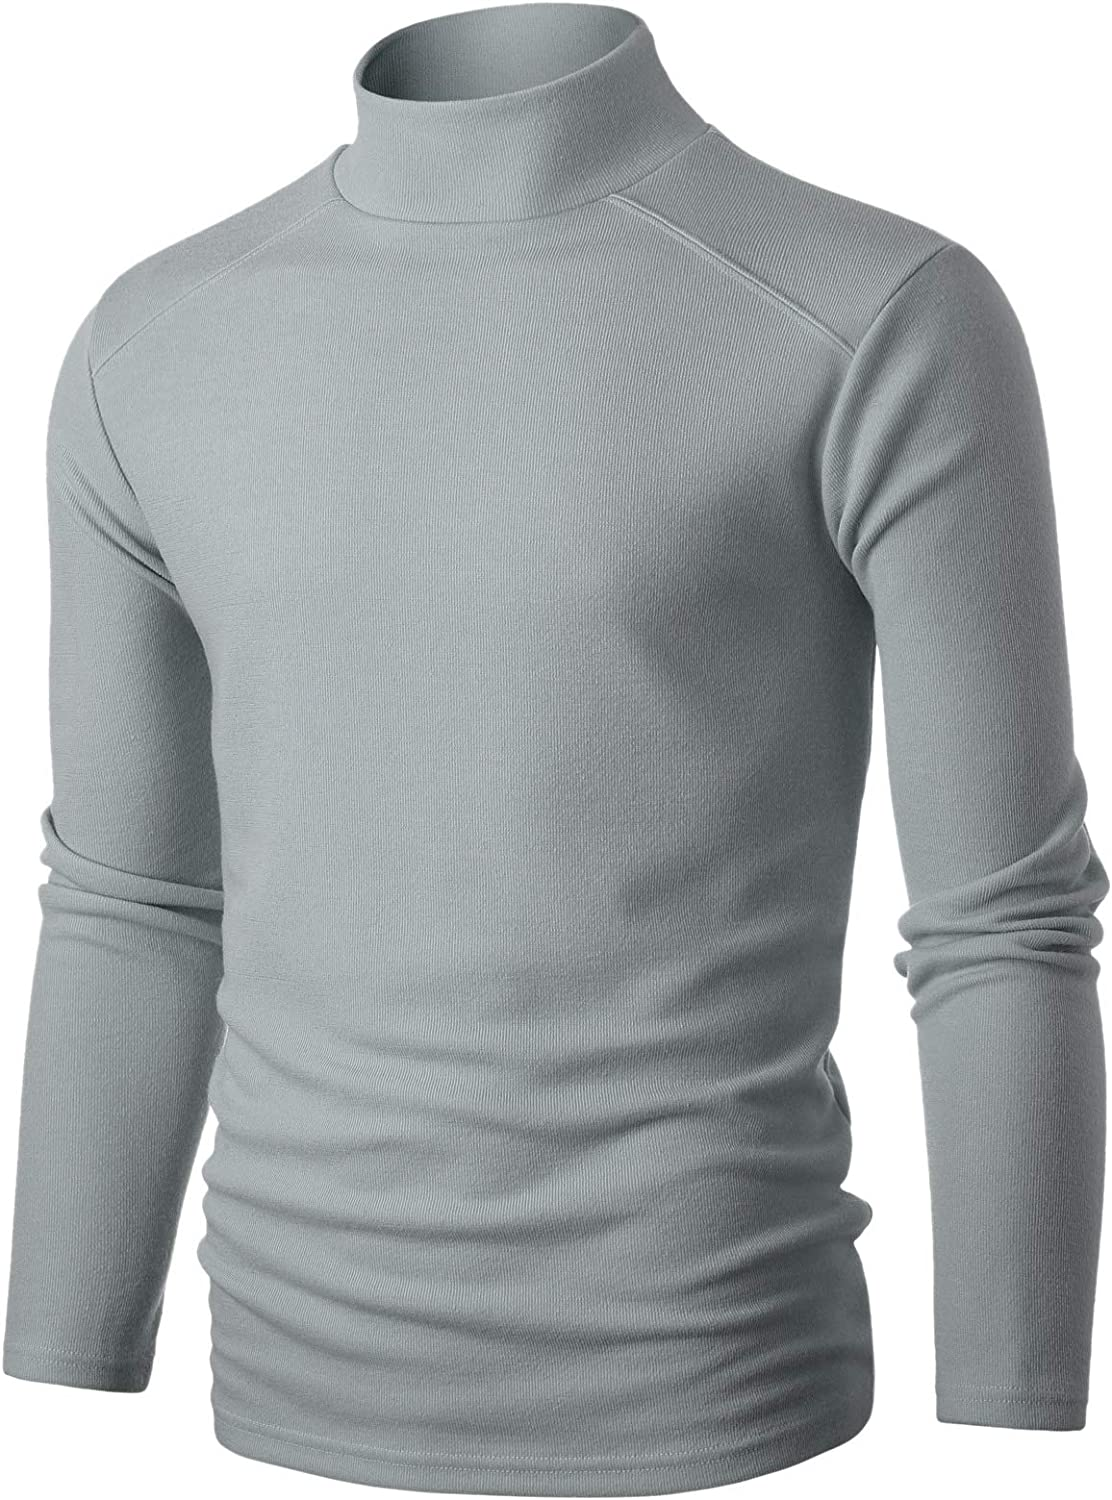 GIVON Mens Slim Fit Long Sleeve Solid Knit Ribbed Mock Neck Pullover Sweater